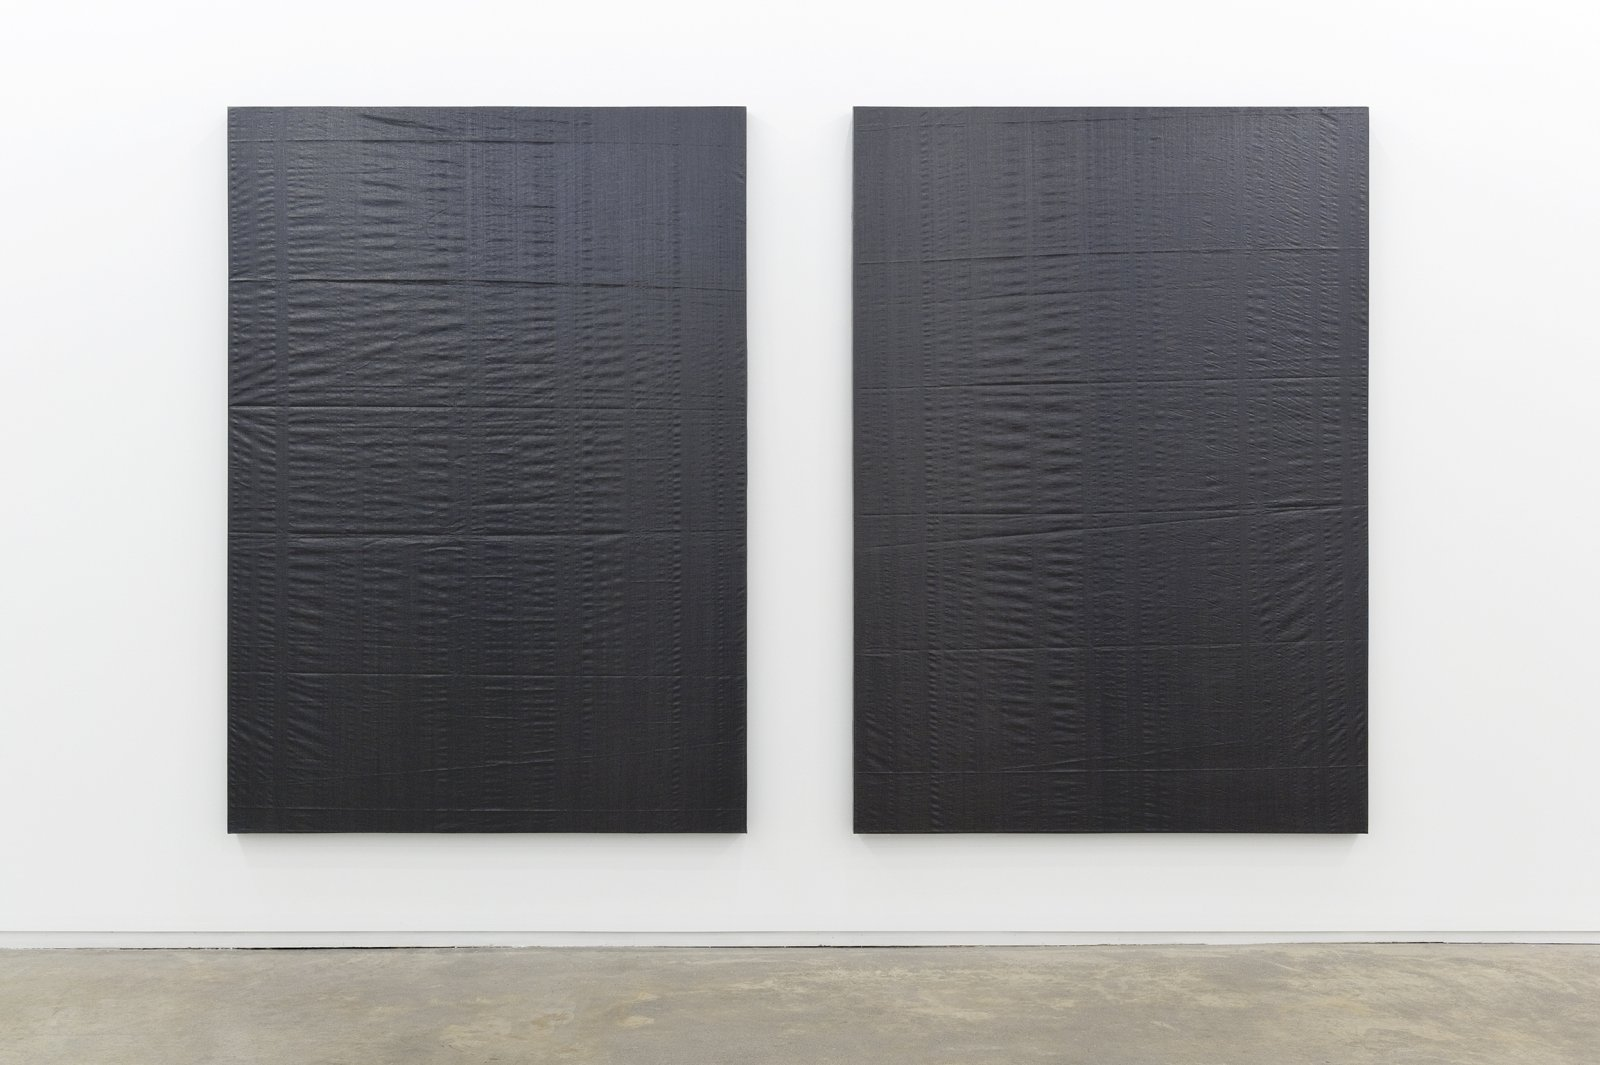 ​Arabella Campbell, Triptych, 2011, 2 grey plastic tarps, one wall, 84 x 133 in. (213 x 337 cm) by